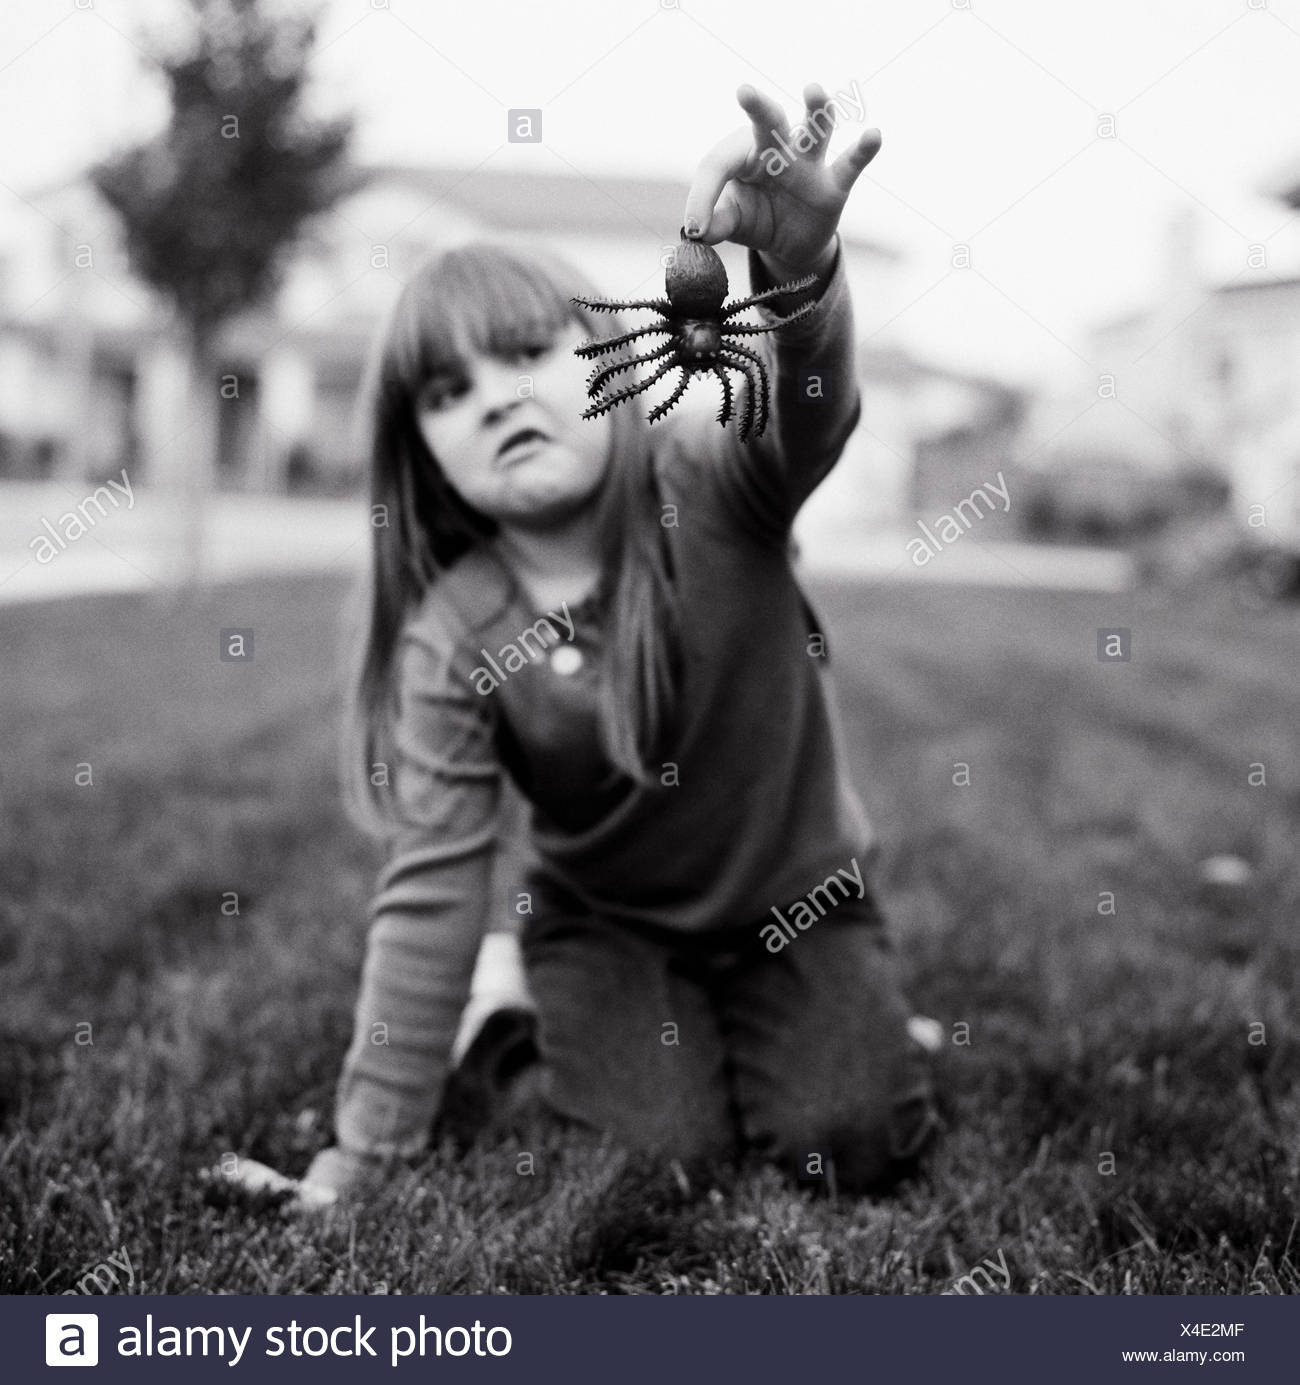 A girl holding a fake spider - Stock Image